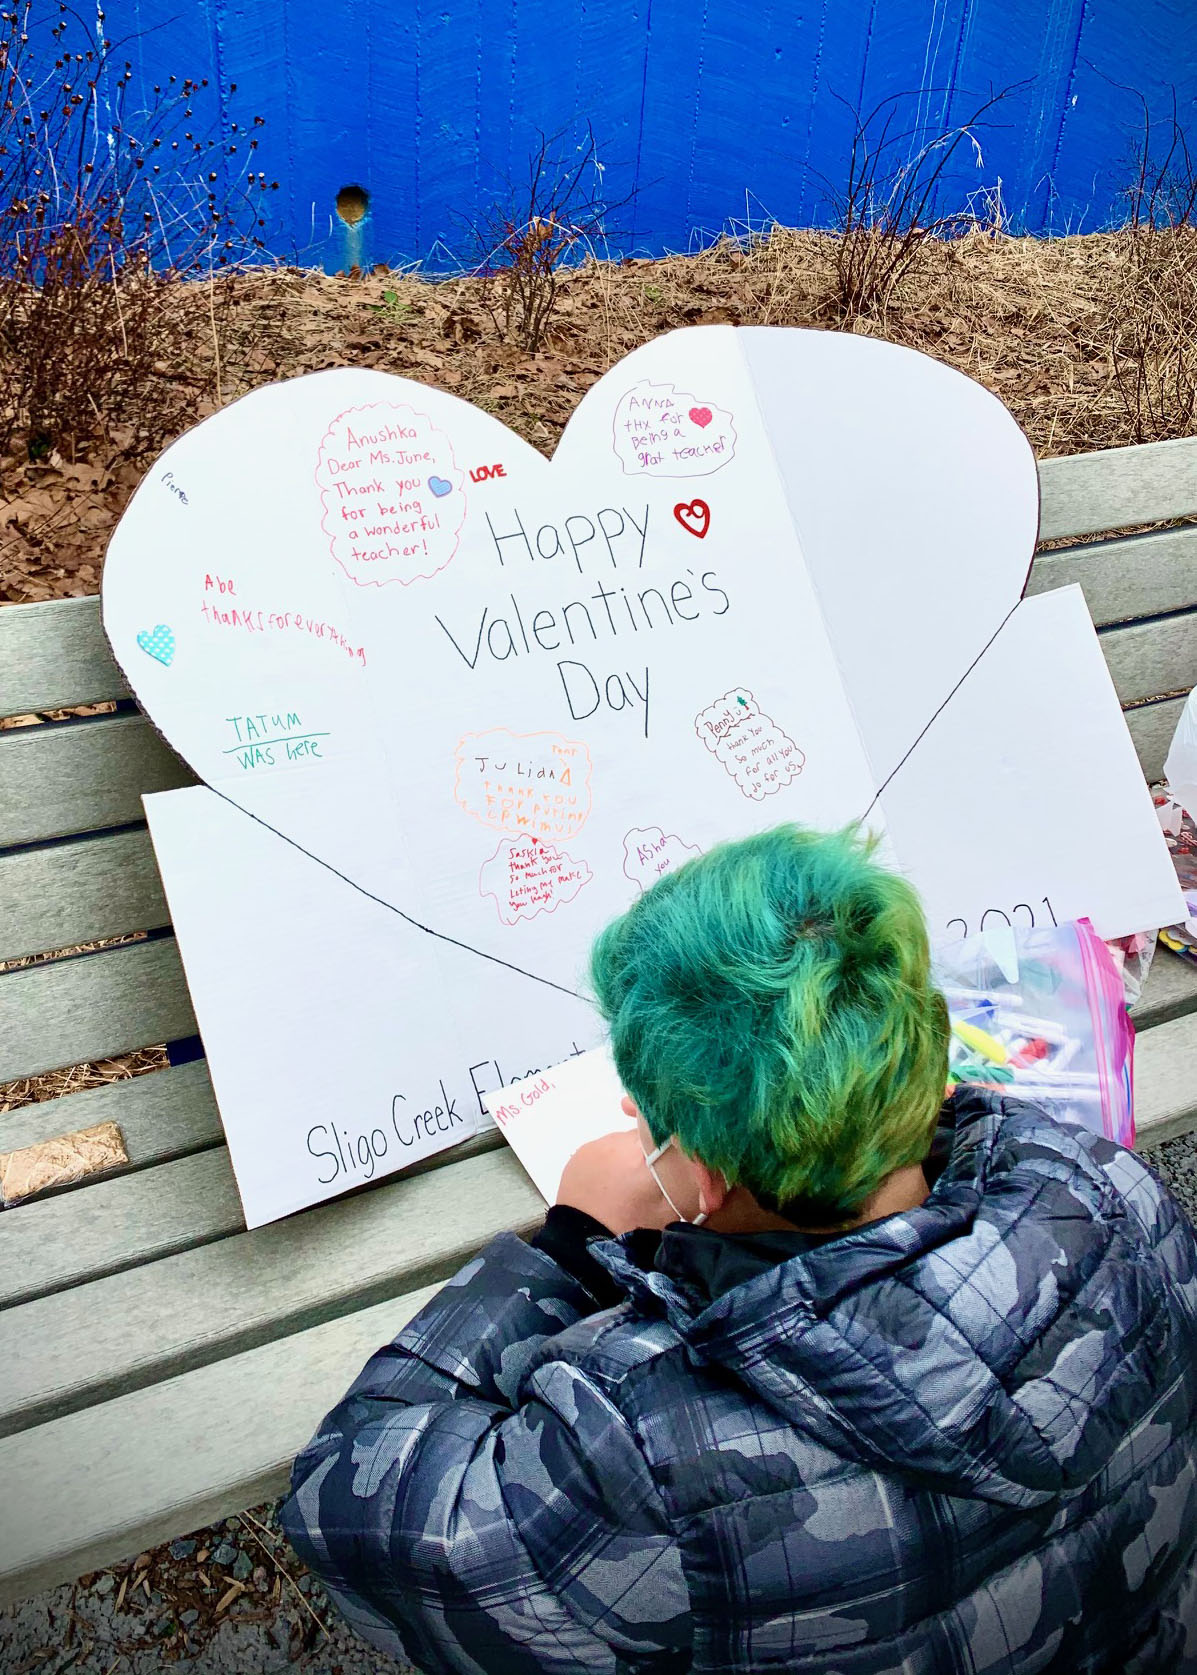 Young boy with colorful hair signs a Valentine's Day card for his teacher